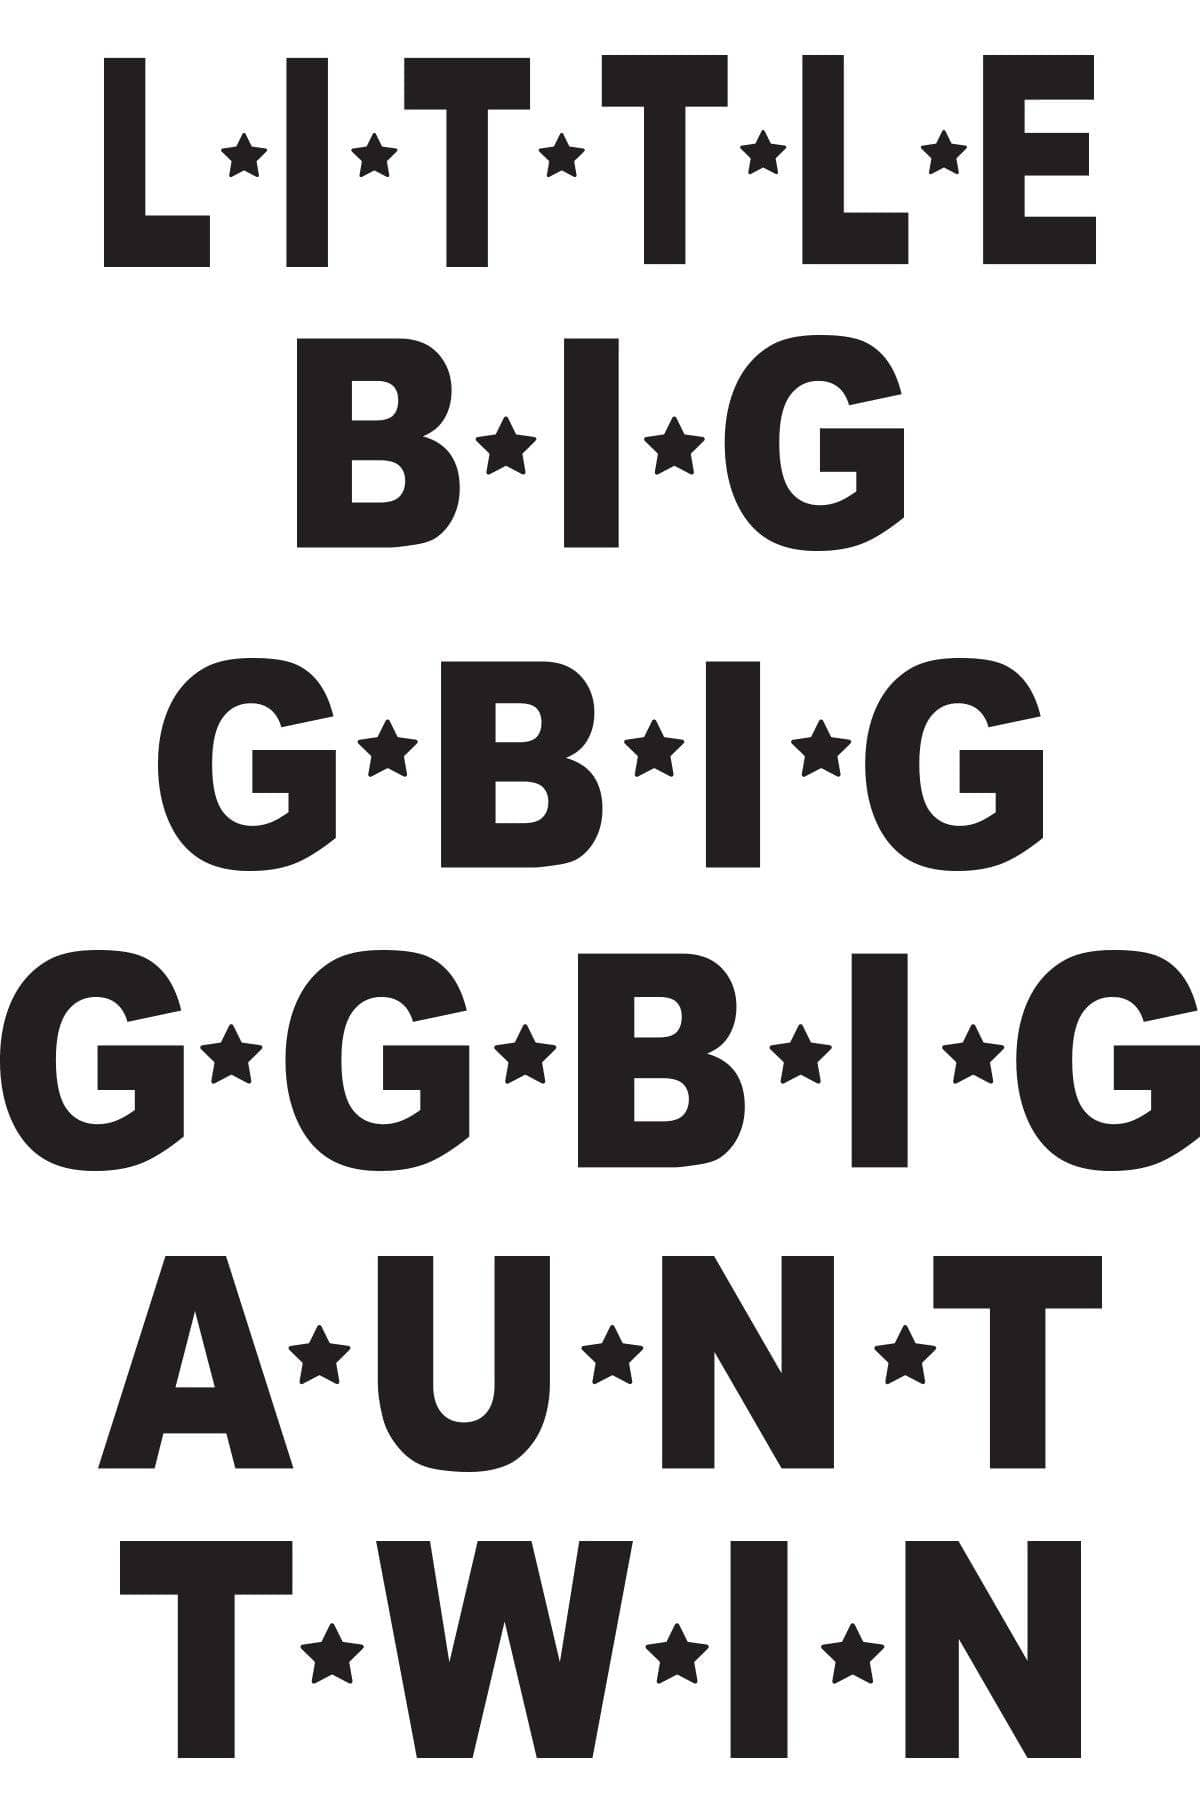 Big Little Star Font Design